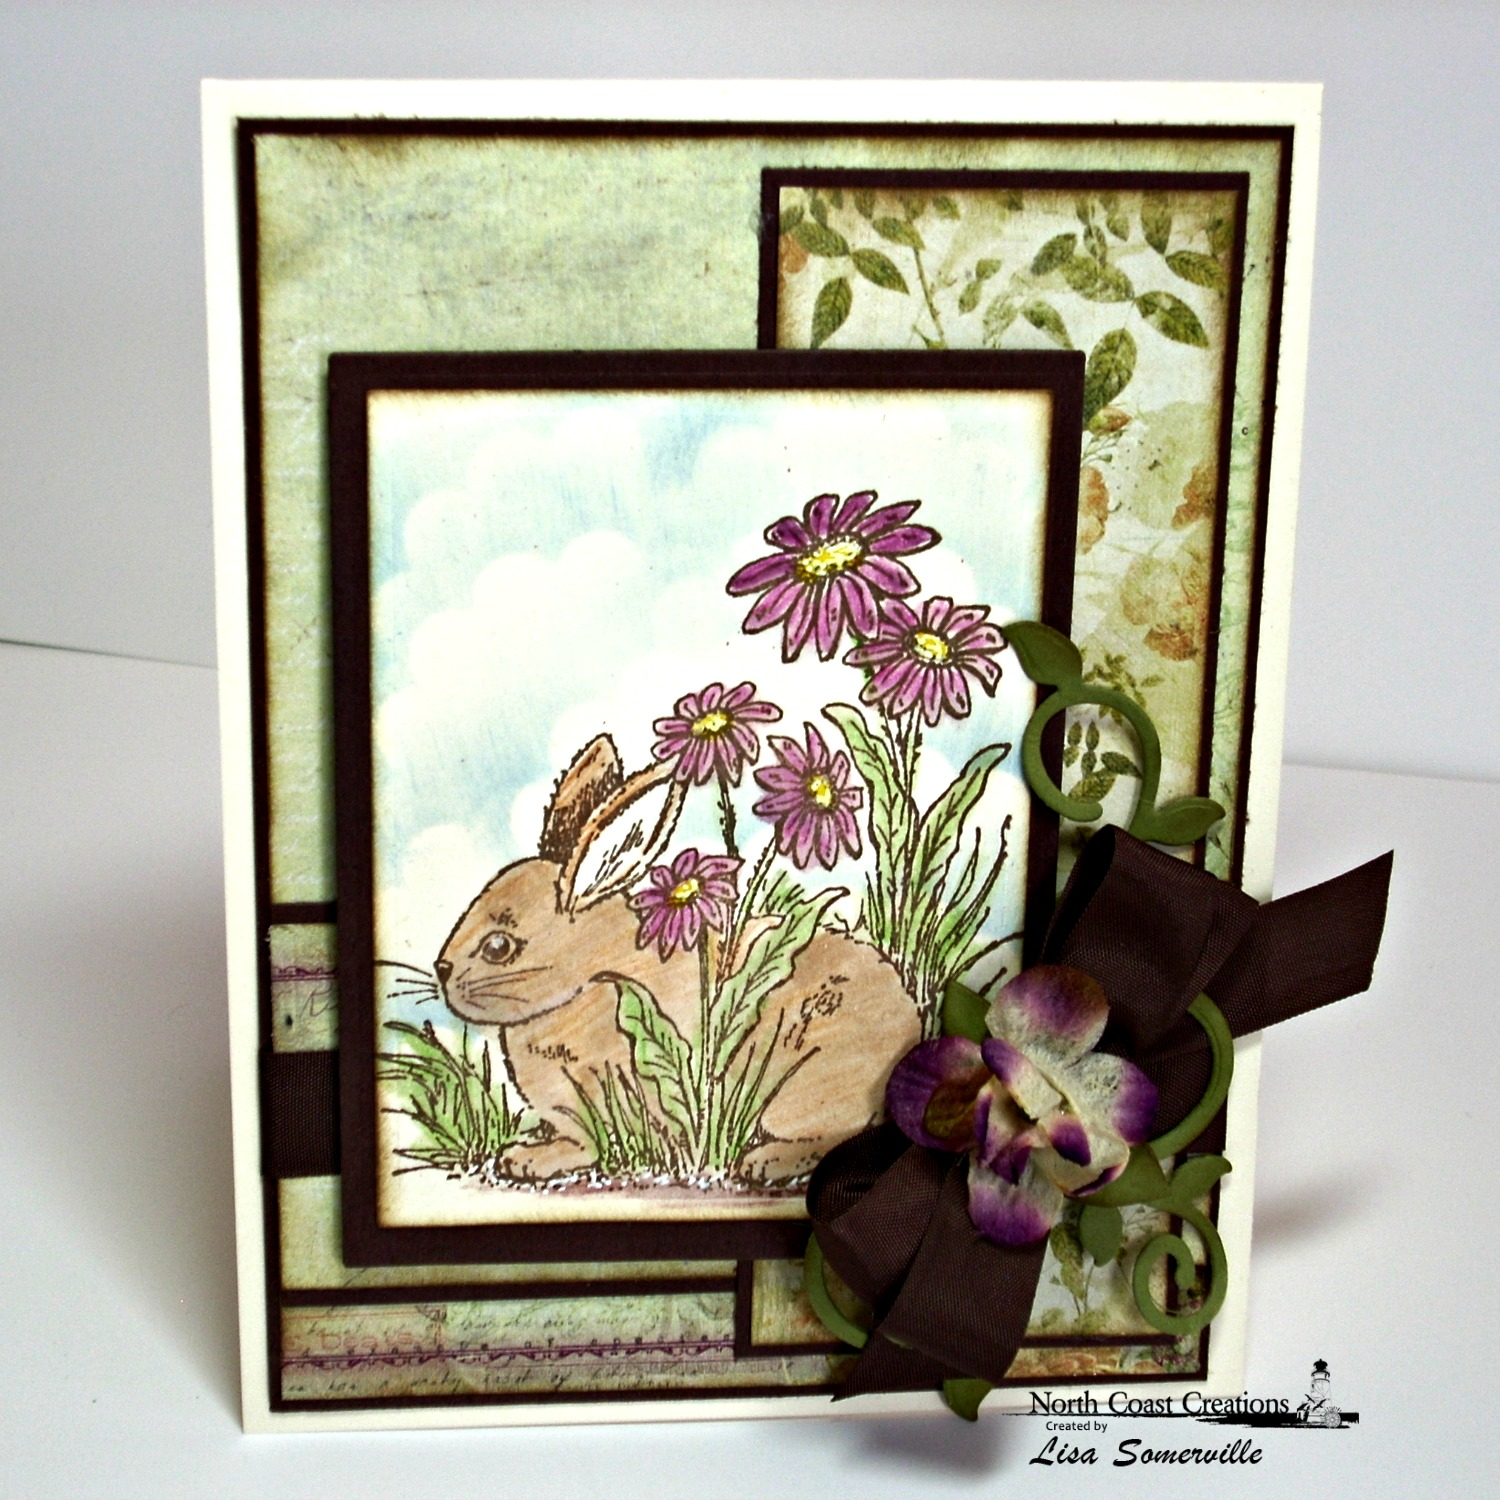 Stamps - North Coast Creations Hoppy Easter, ODBD Custom Fancy Foliage Die